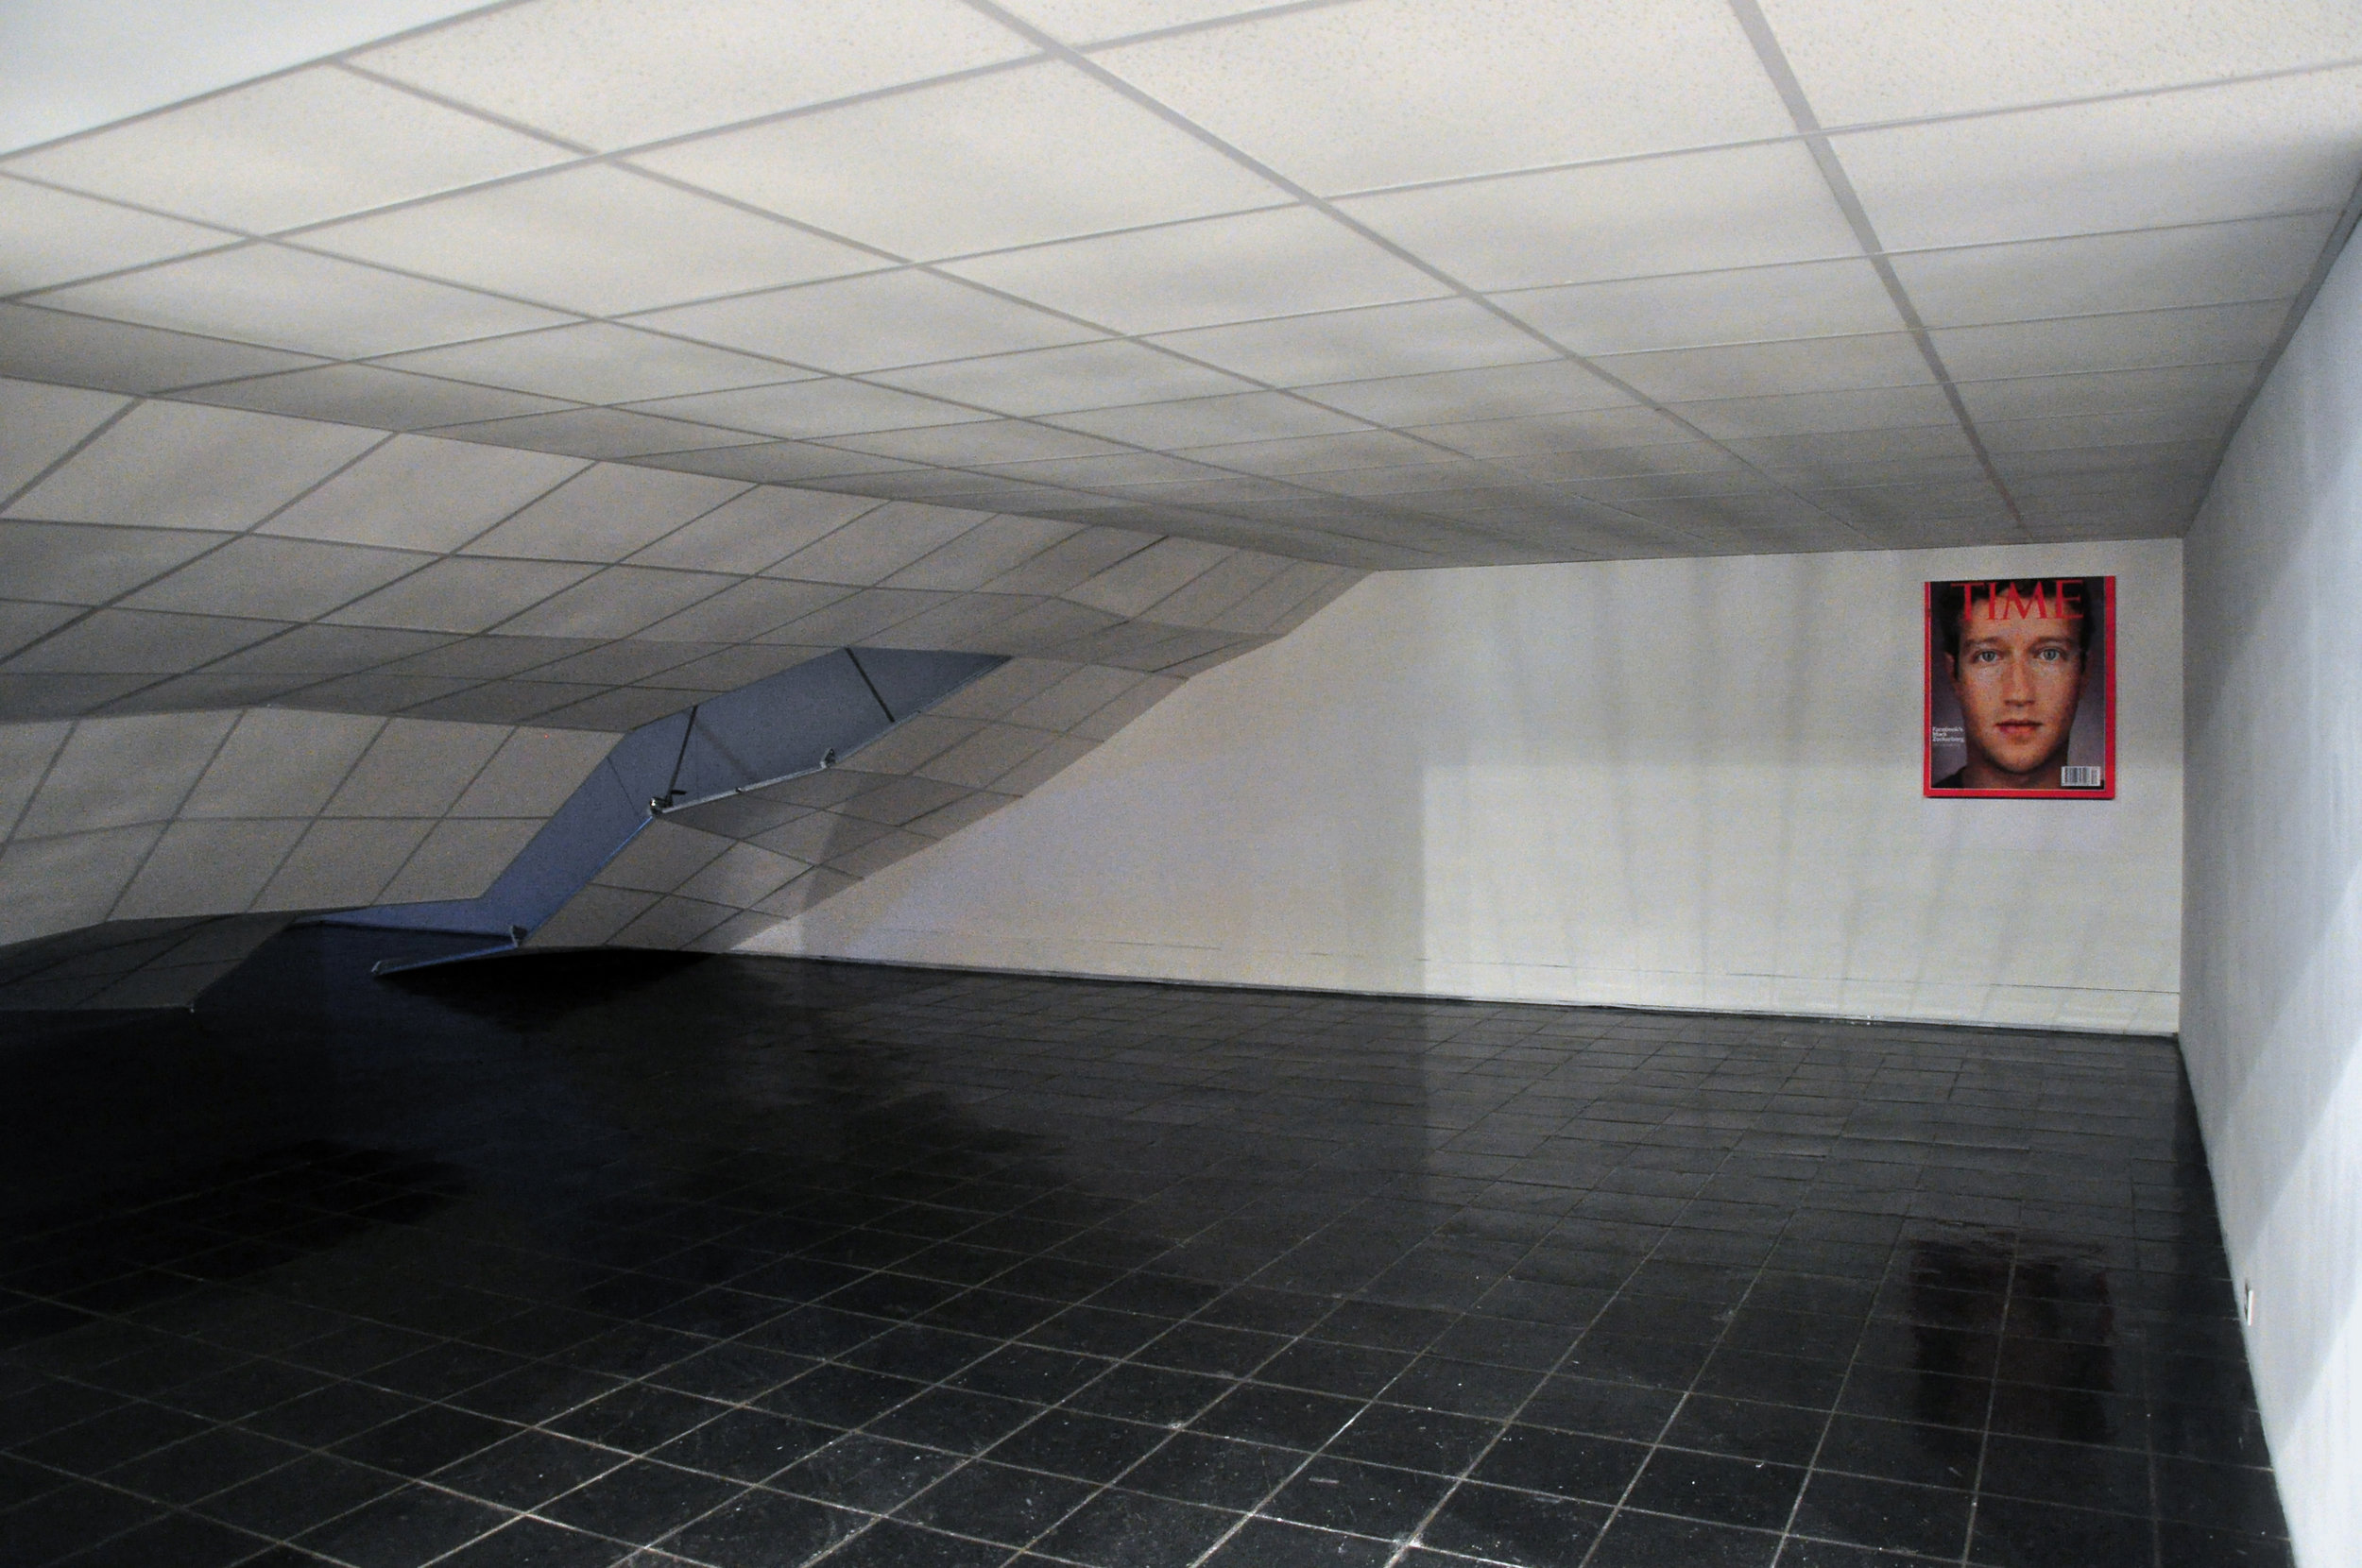 Dennis McNulty,  The Crash, 2011 with FACETIME , 2011; suspended ceiling elements, tiles and ratchet straps; dimensions variable; and poster, 33 x 40 inches; courtesy of the artist and Green On Red Gallery, Dublin; commissioned by Bureau for Open Culture